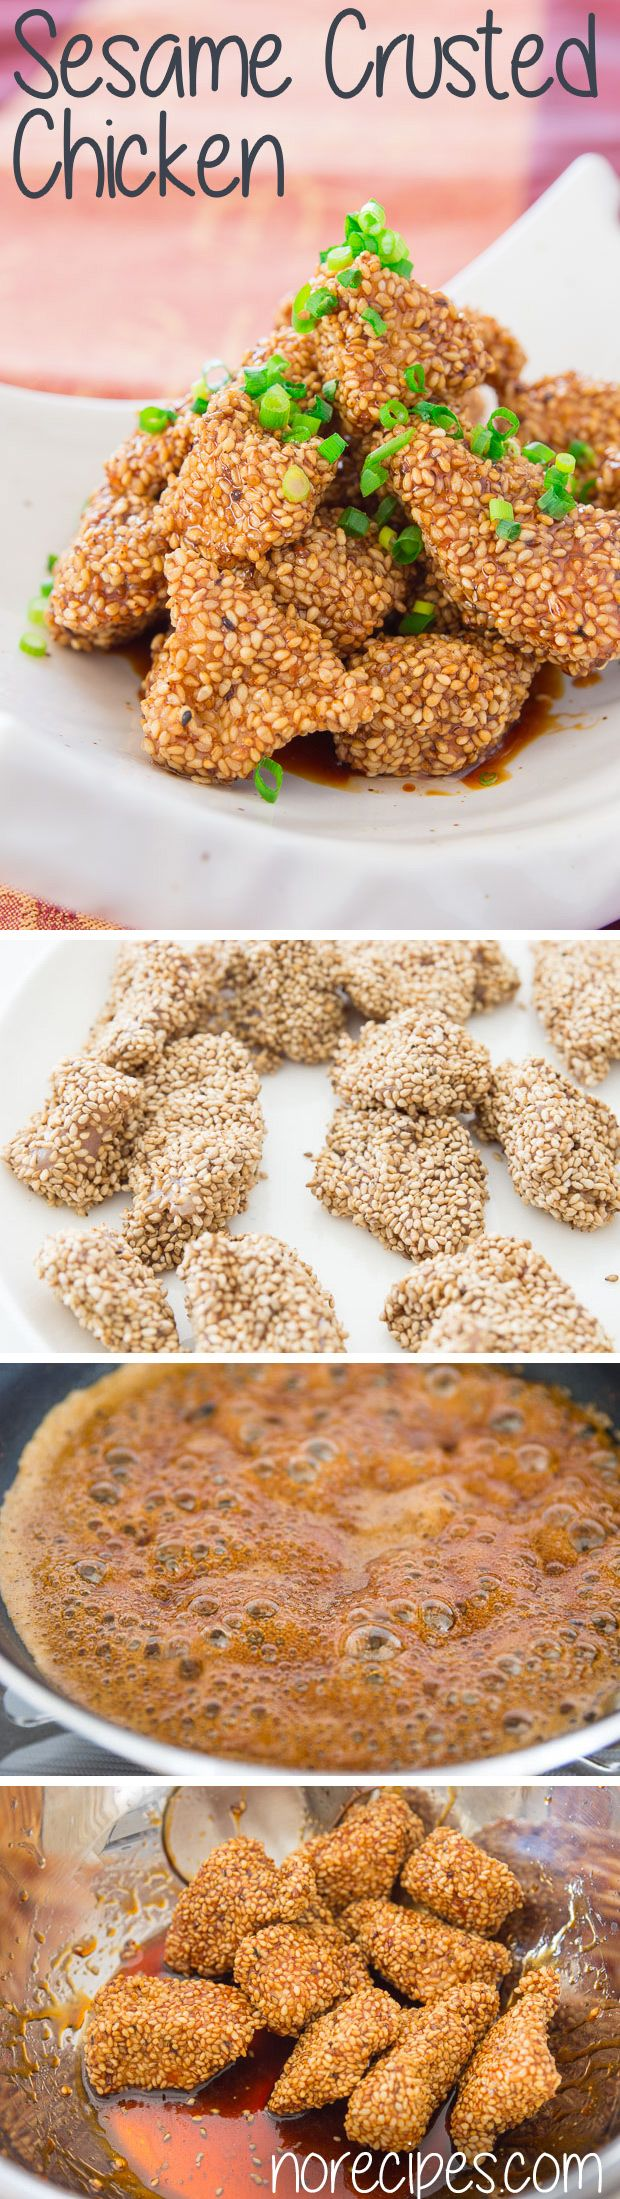 A coating of crunchy sesame seeds gives this Gluten Free SESAME CHICKEN a marvelous crunch and rich nutty flavor. (gf soy)